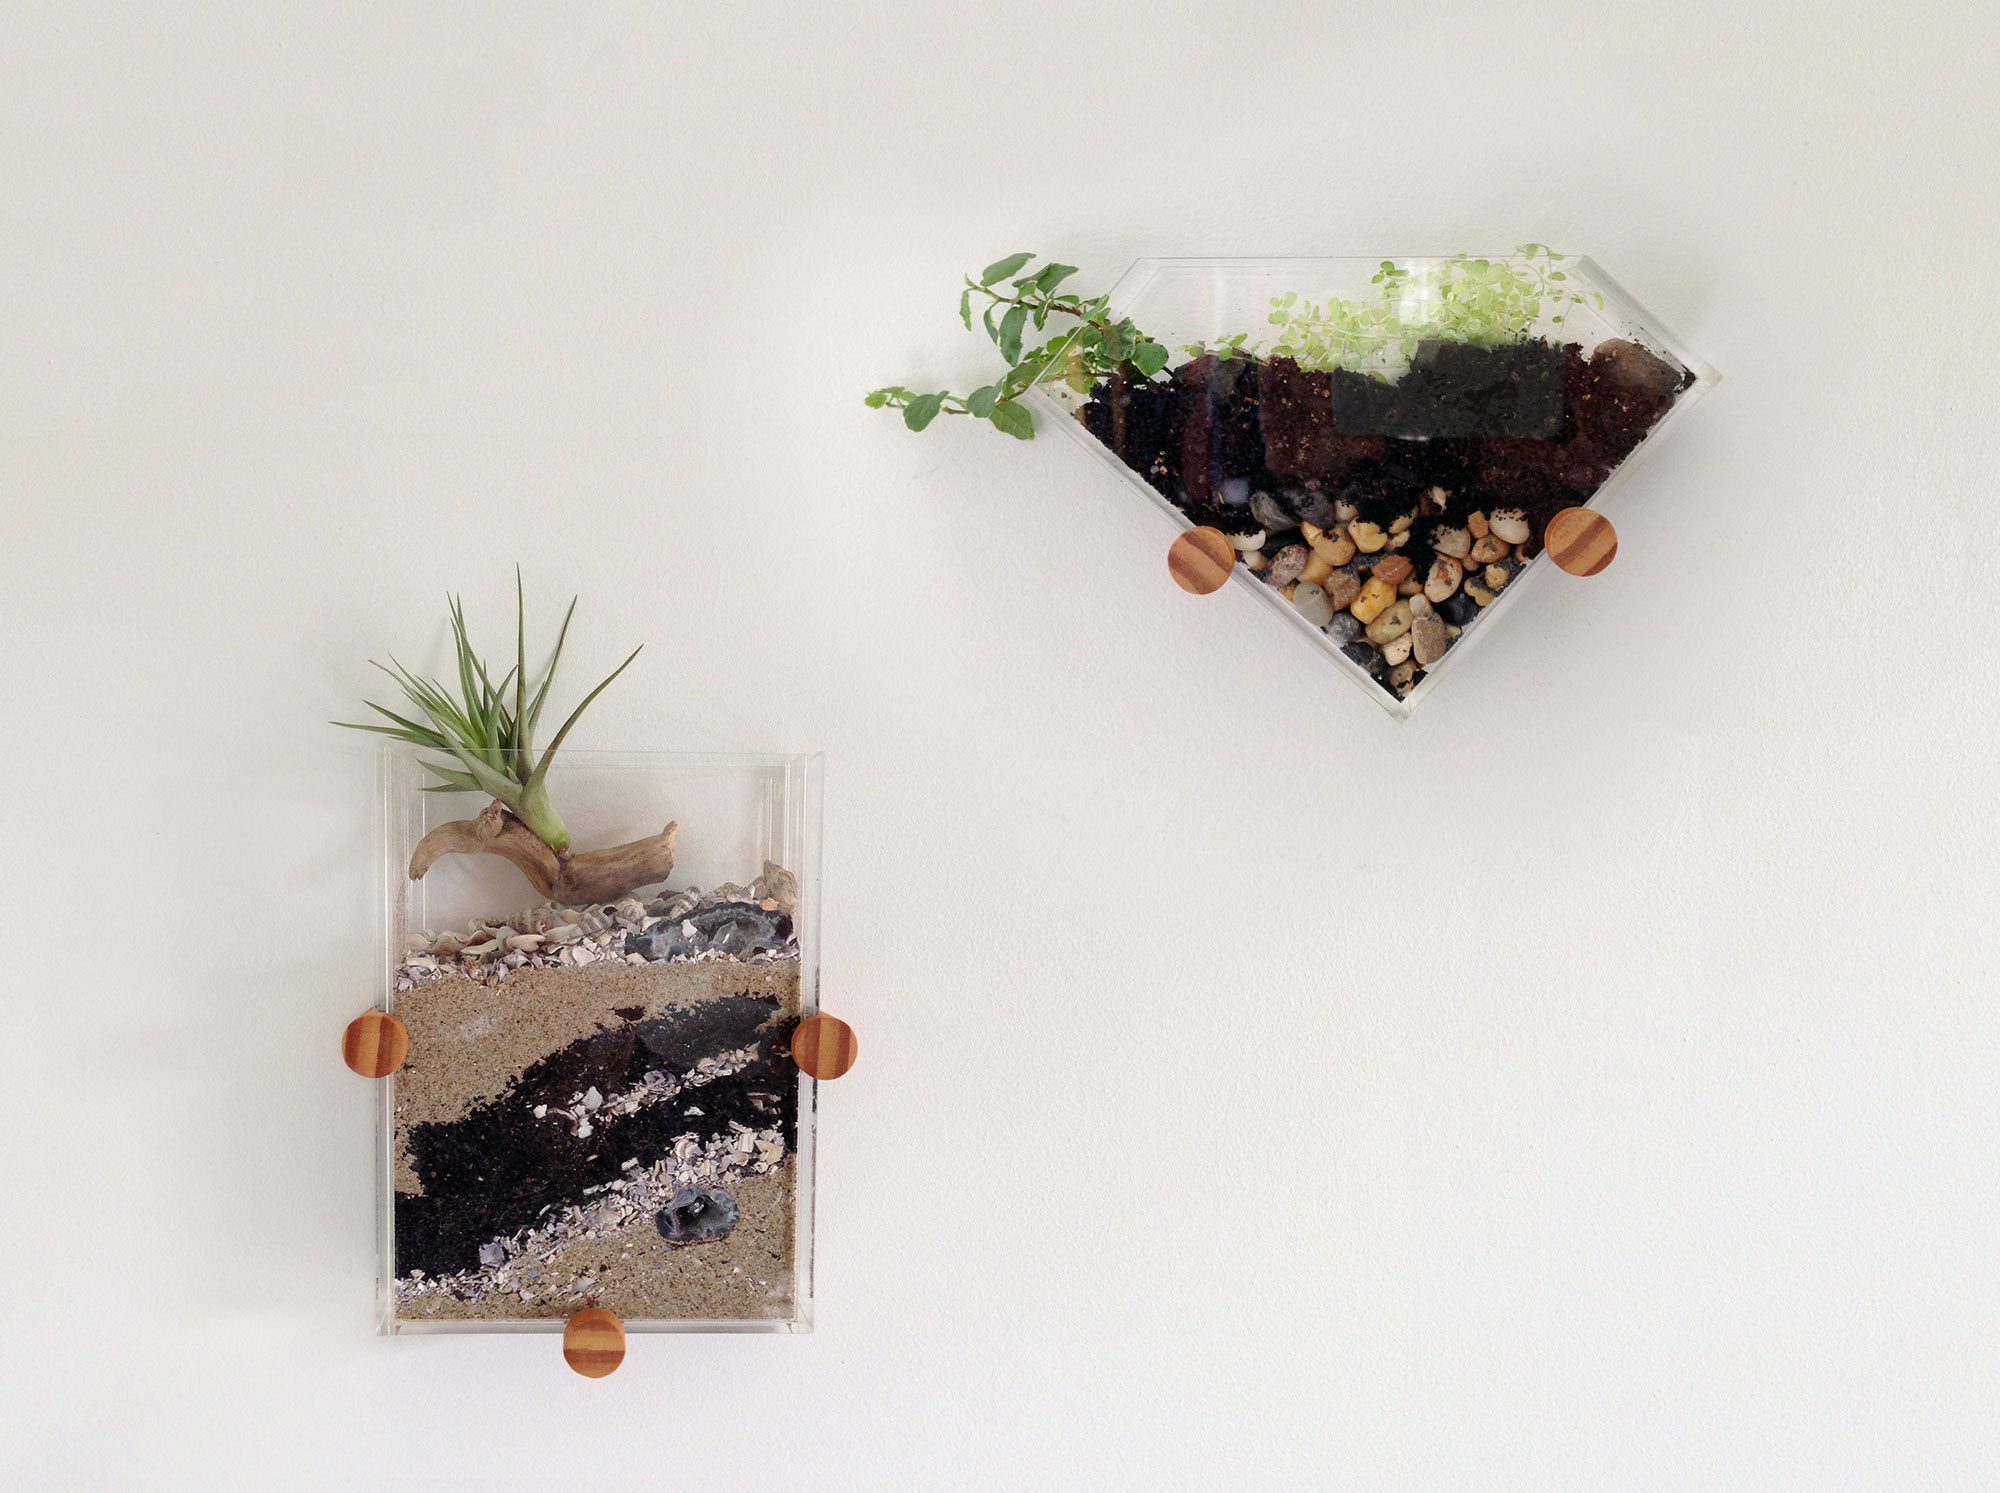 Wall mounted terrariums